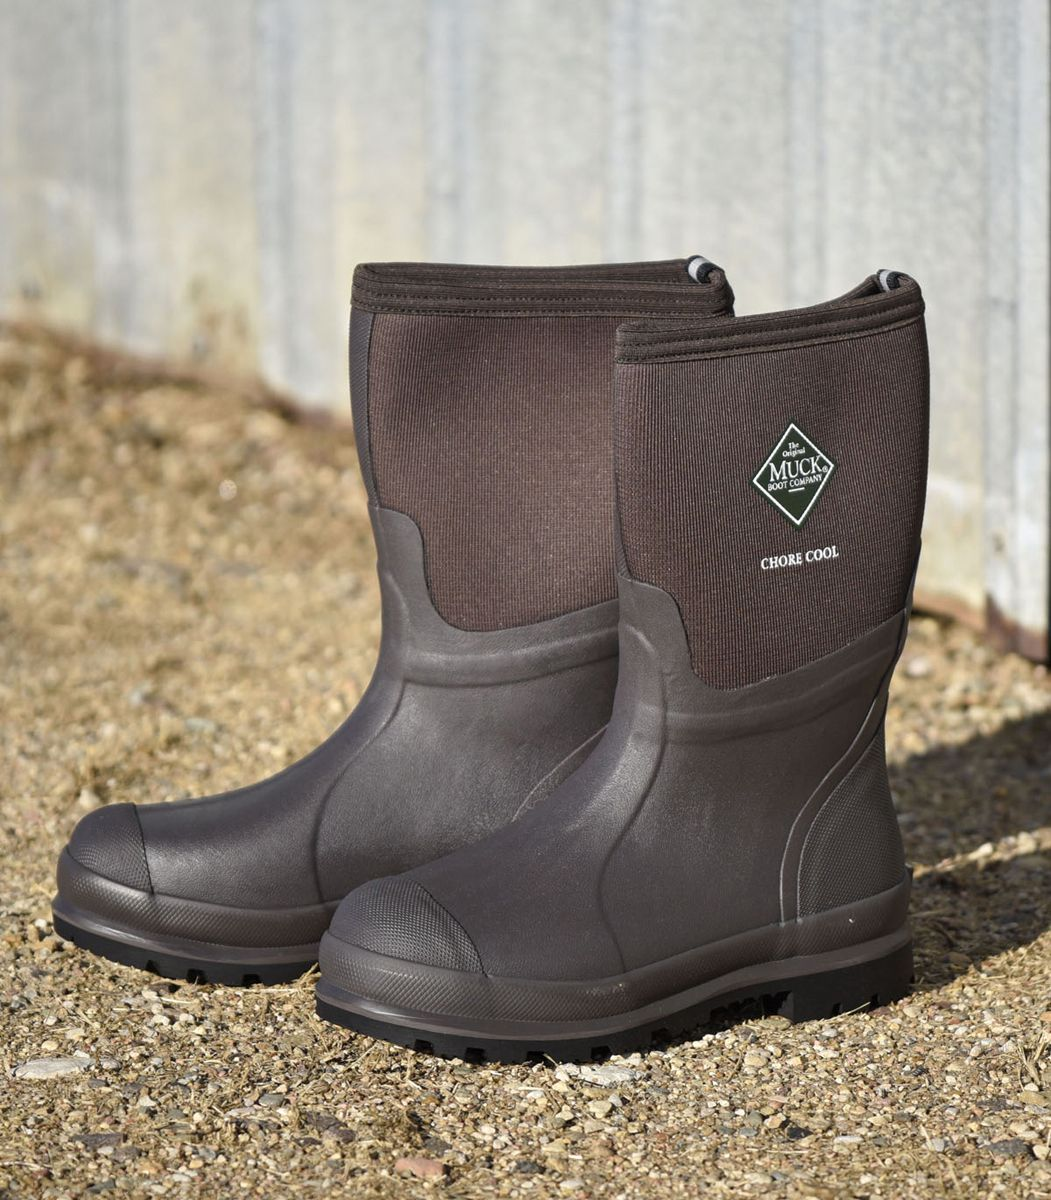 a18dfe22fa5 Mid Cool Unisex Chore Boots - Mens 5/Womens 6 Brown | Men's Chore ...